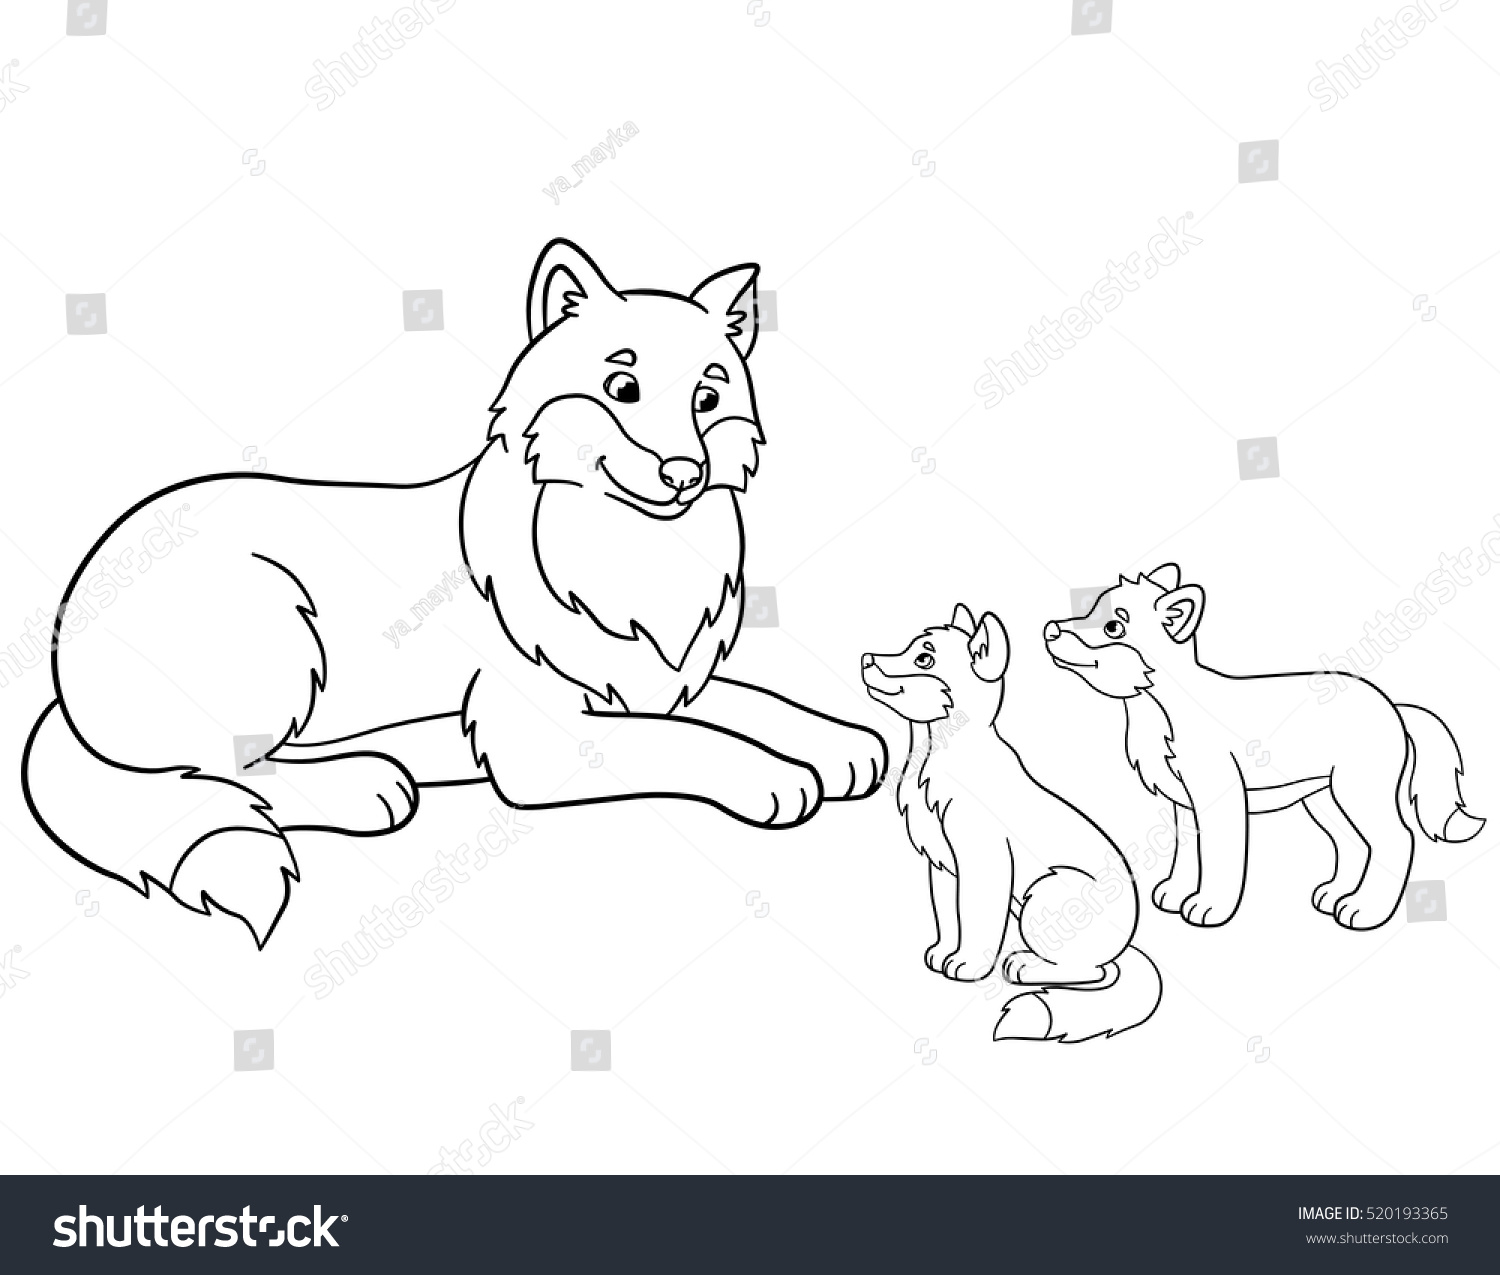 Free Wolf With Pup Coloring Pages, Download Free Clip Art, Free ... | 1275x1500